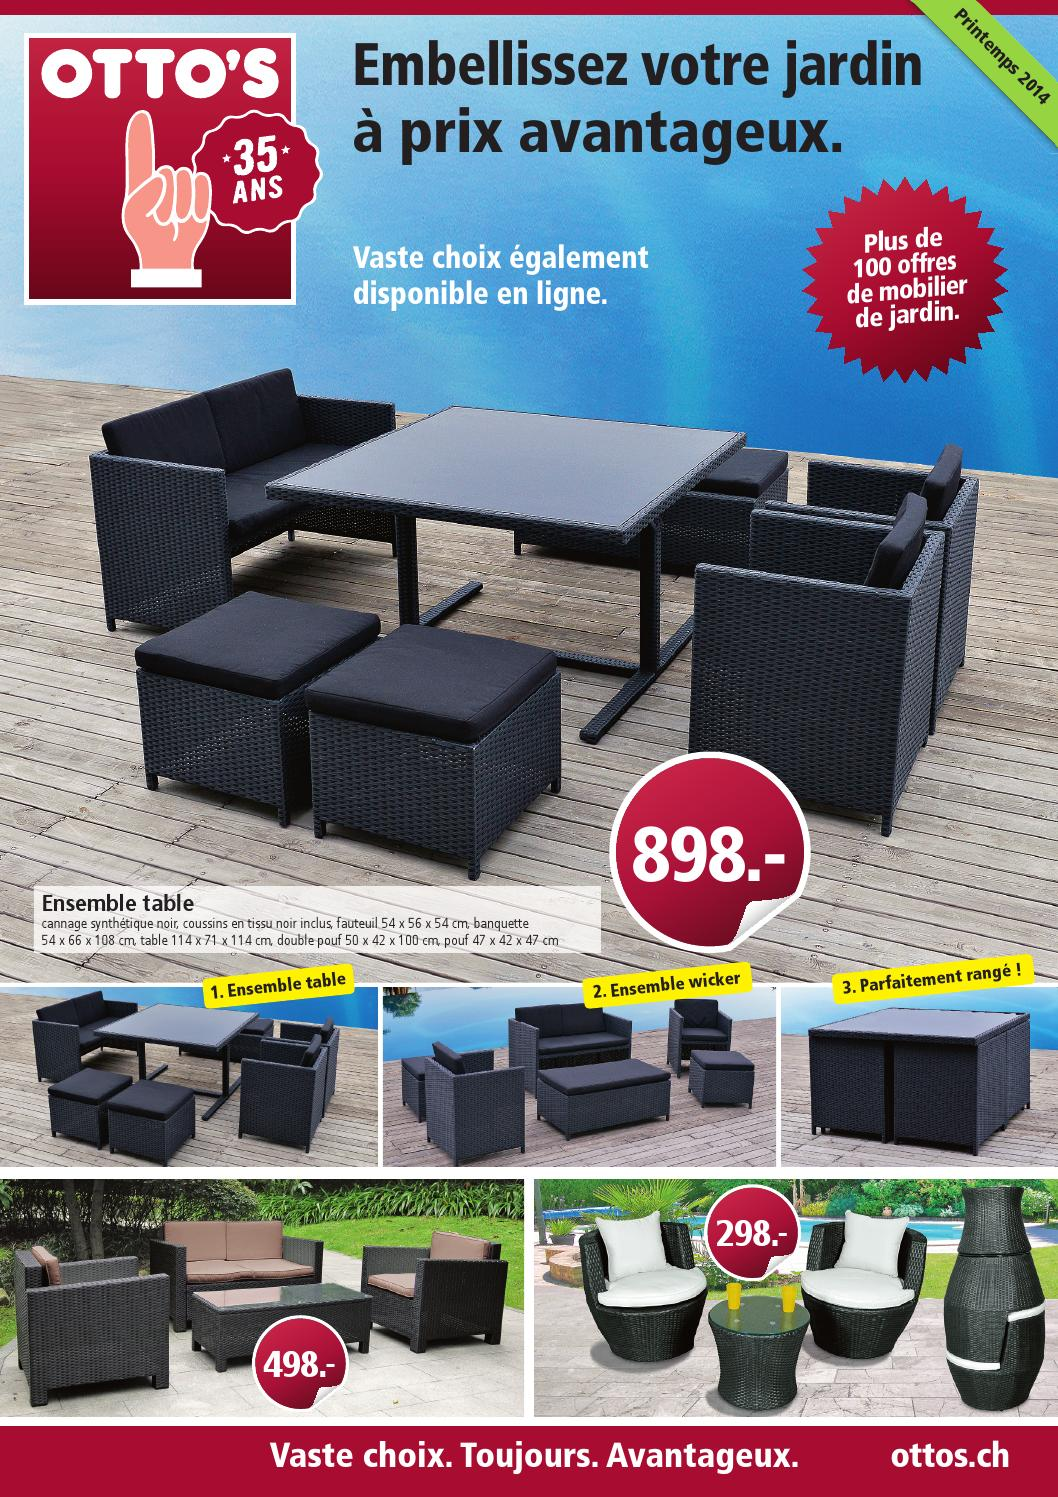 otto 39 s mobilier de jardin 2014 by otto 39 s ag issuu. Black Bedroom Furniture Sets. Home Design Ideas